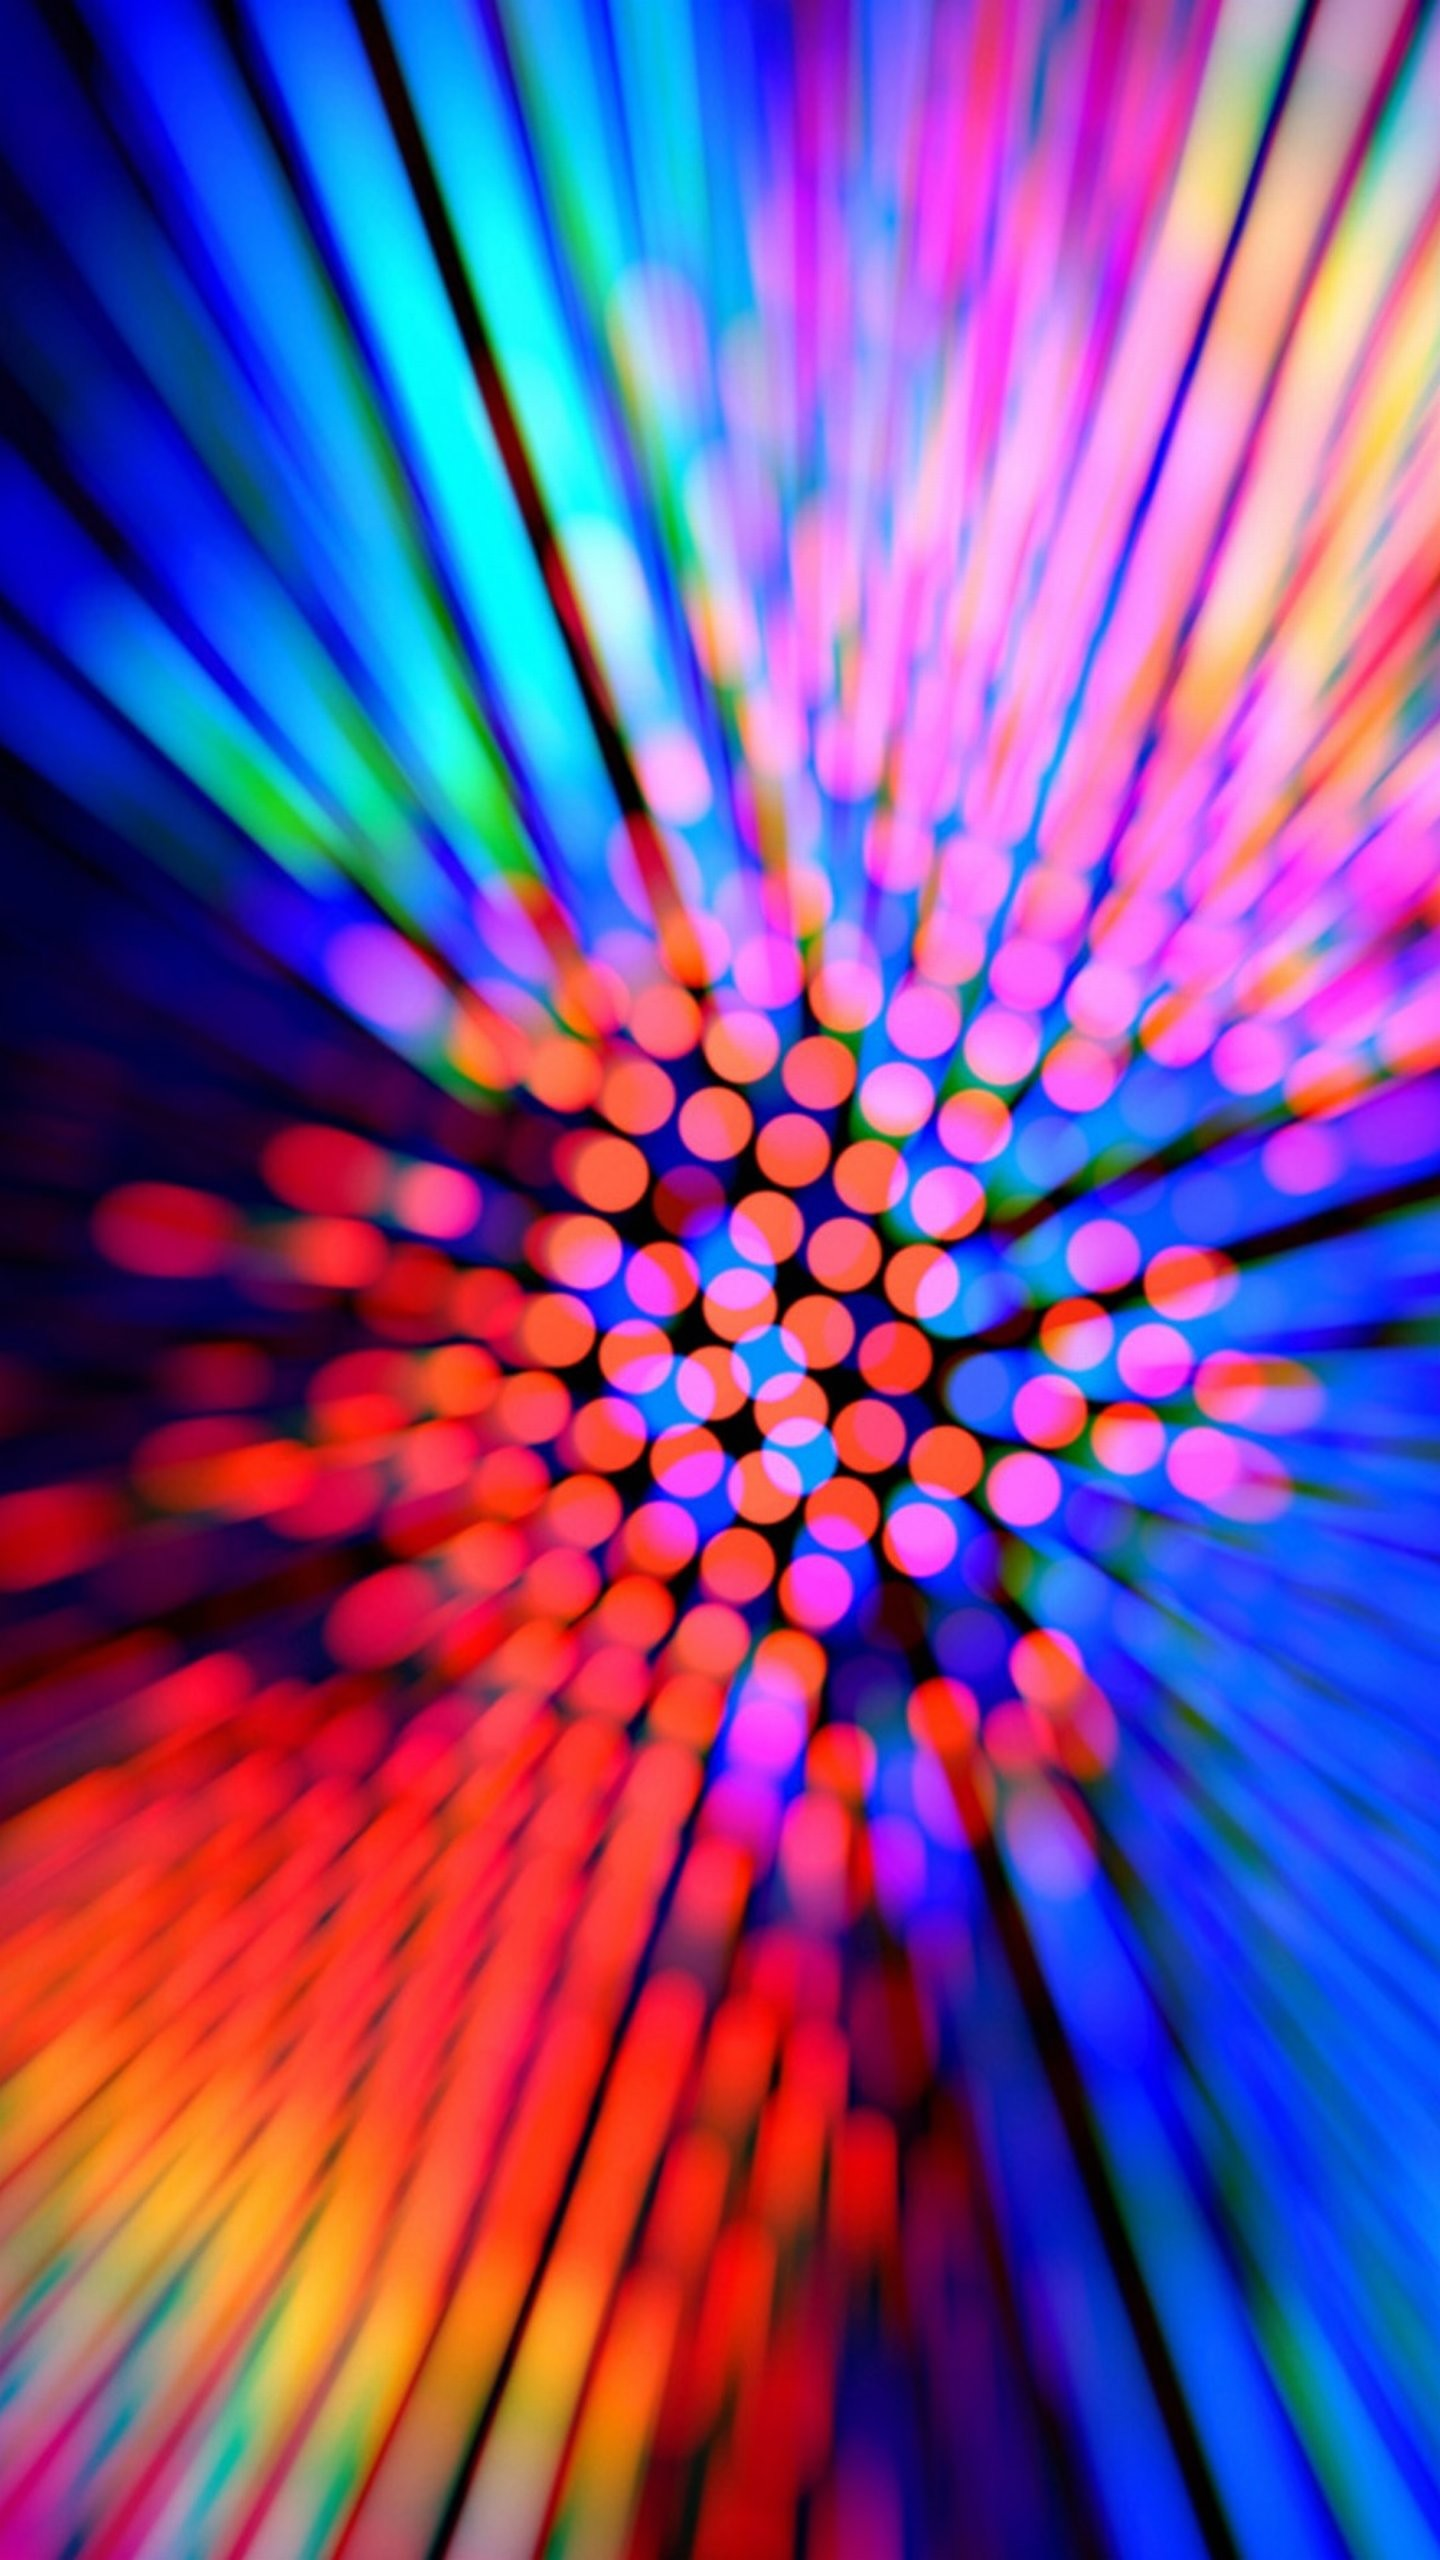 Wallpaper Lg G4 Speed Colors Abstract 1440 2560.